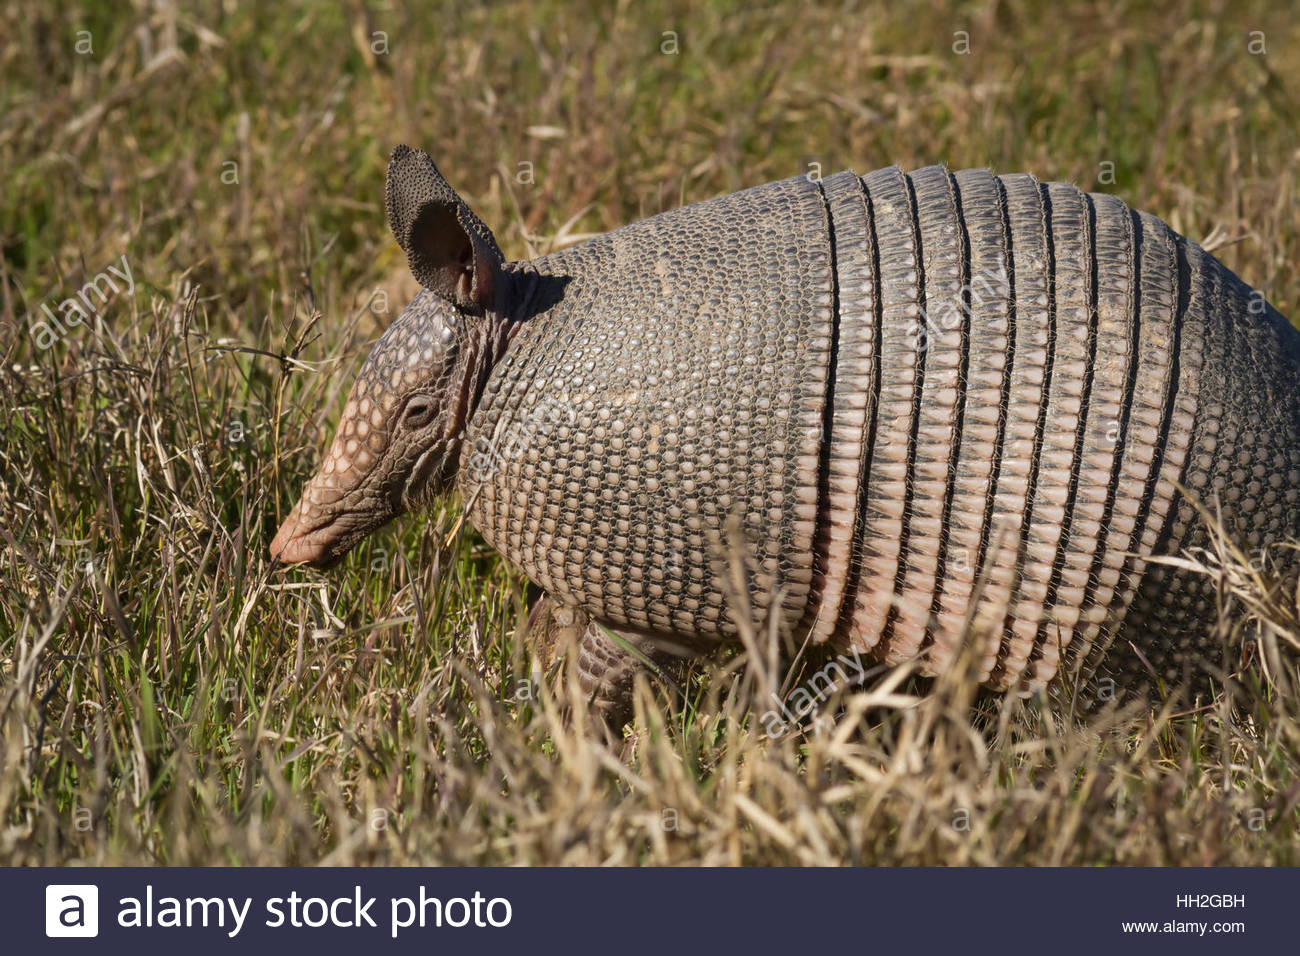 A Texas Armadillo (Dasypus novemcinctus) searching for food in a field. - Stock Image